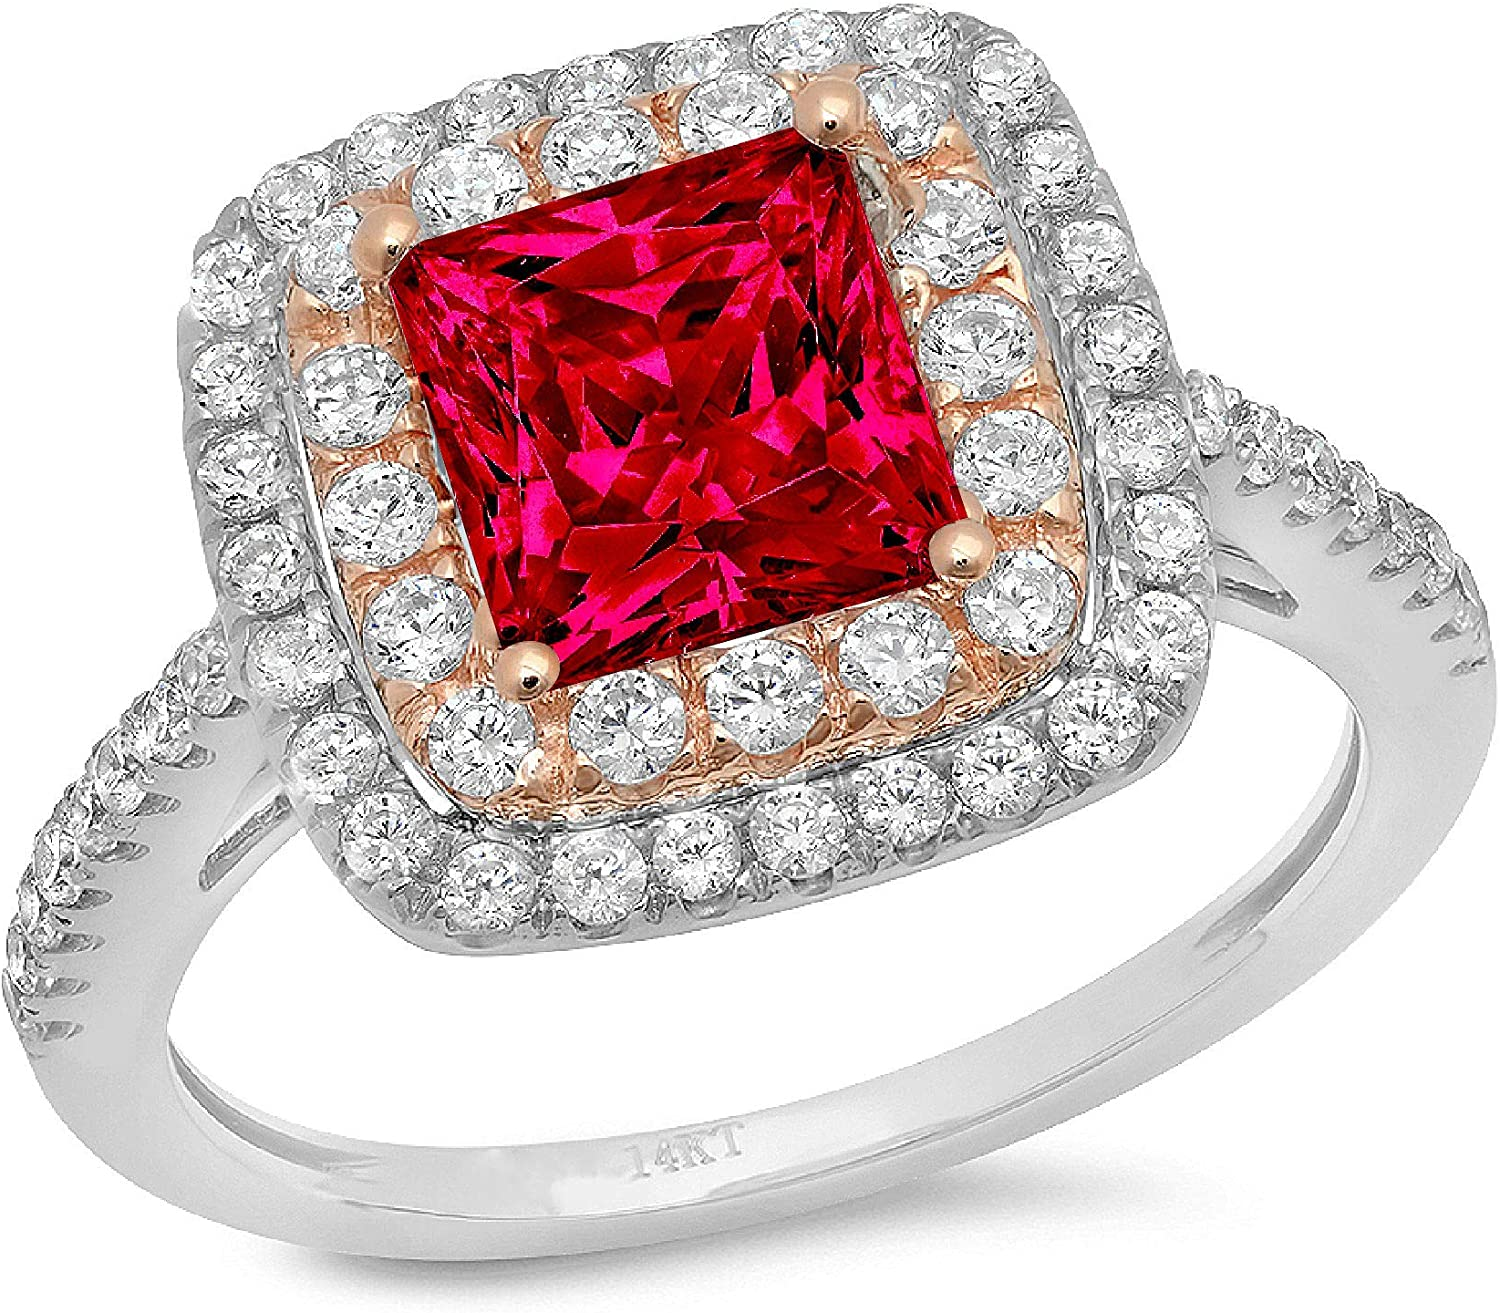 2.33ct Princess Cut Large special price !! Double Halo Solitaire Flawless Free shipping New Accent S with